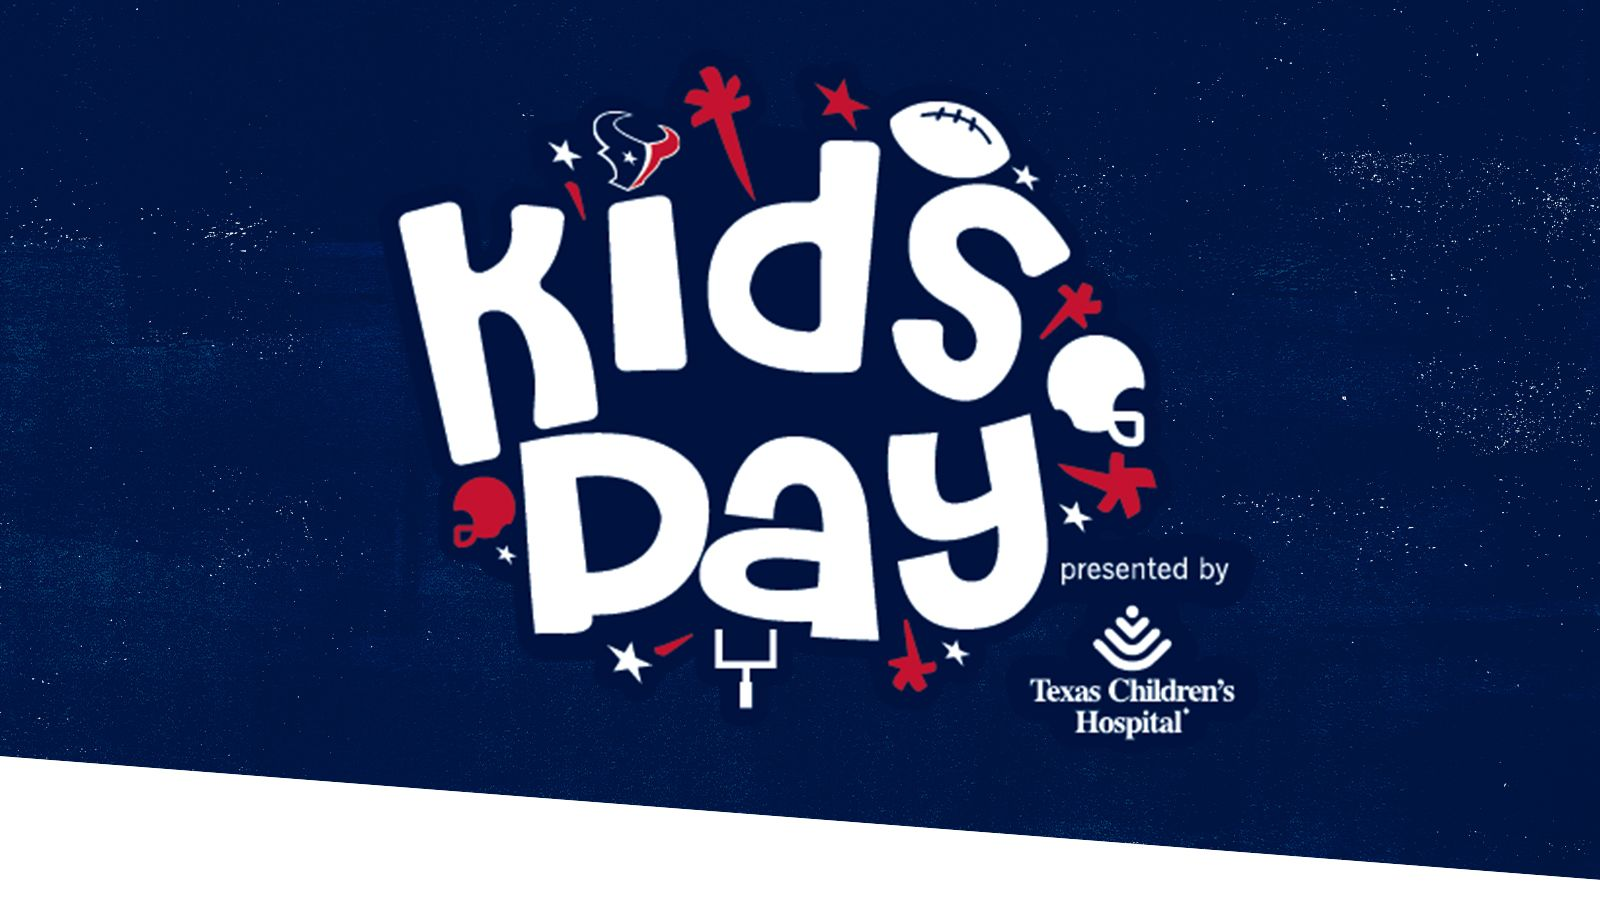 Kids Day/Play 60 presented by Texas Children's Hospital